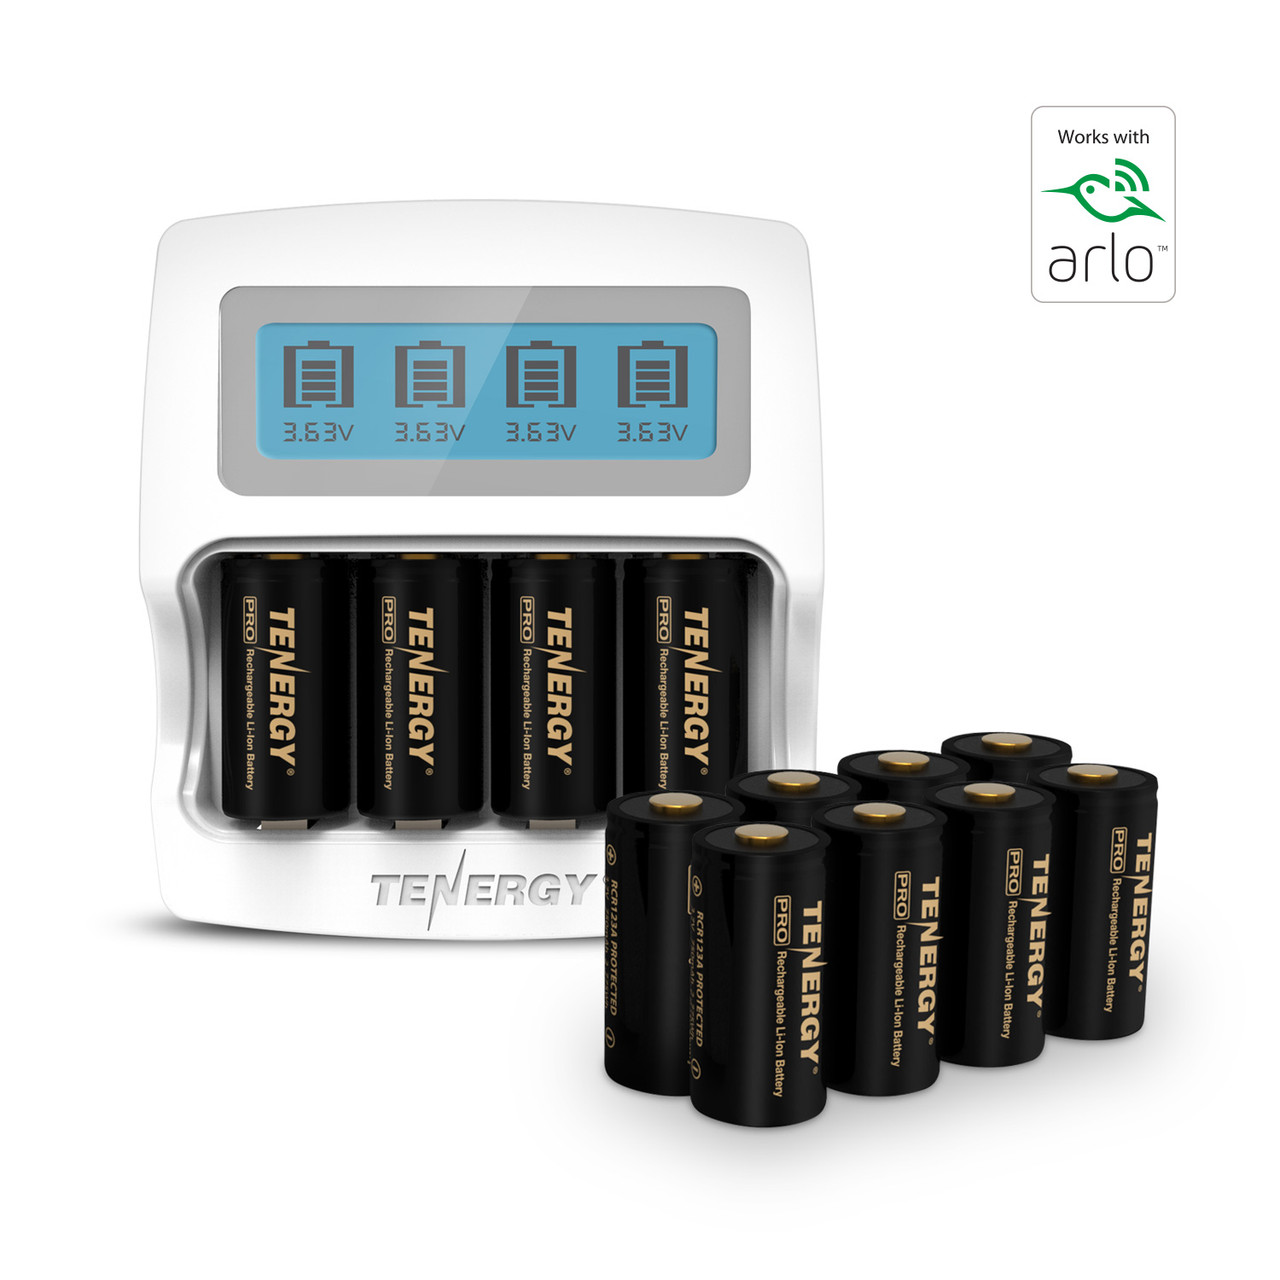 Tenergy Premium High Capacity Rechargeable Battery (12-Pack and Charger) Arlo Certified Li-ion 3.7V 750mAh and Smart Fast Charger with LCD